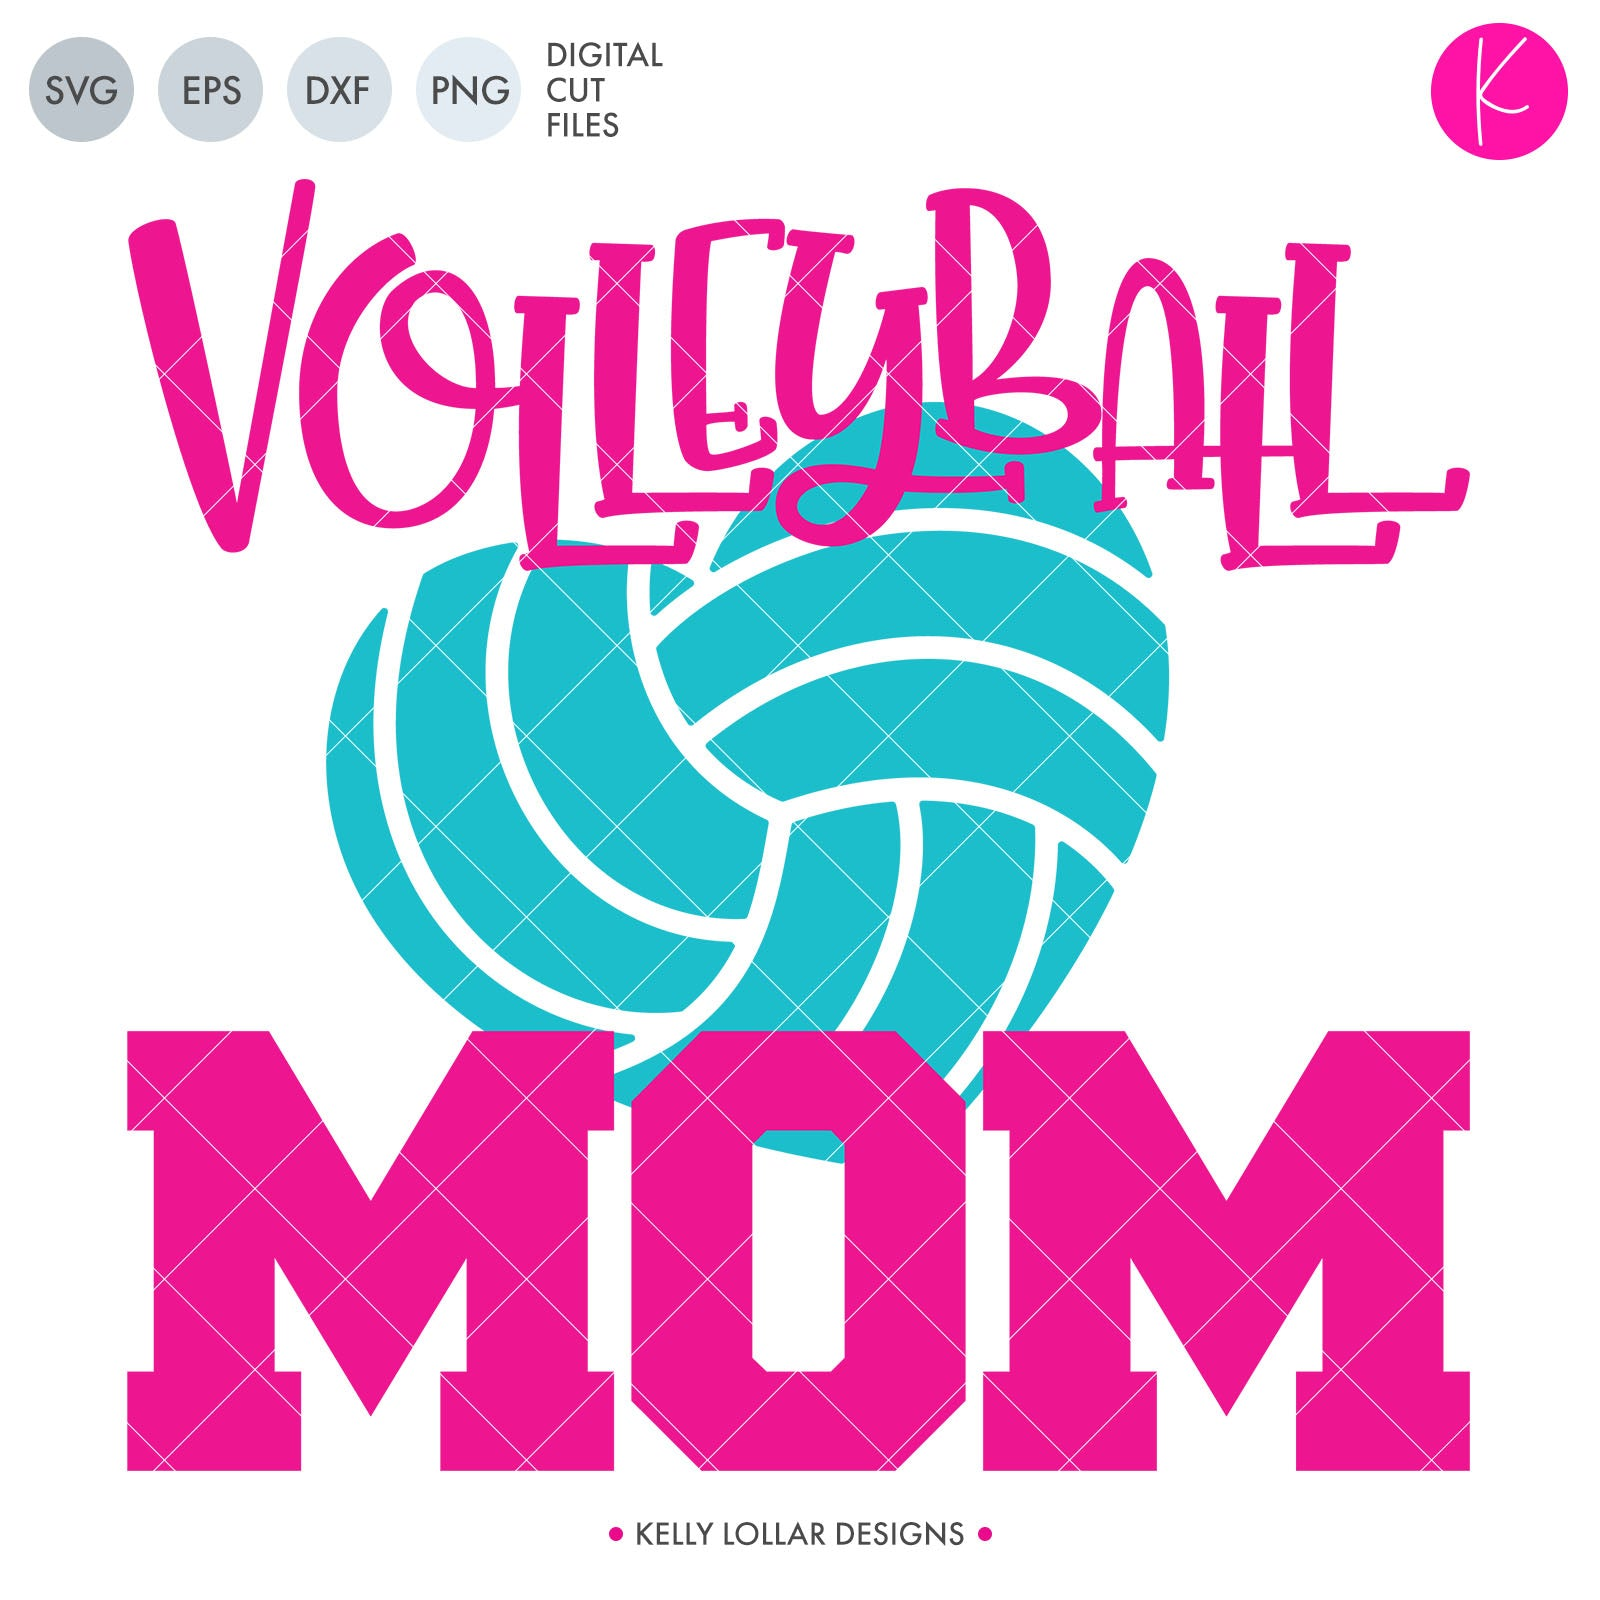 Volleyball Mom svg file - Volleyball Mom Quote with Heart Shaped Volleyball | SVG DXF PNG Cut Files